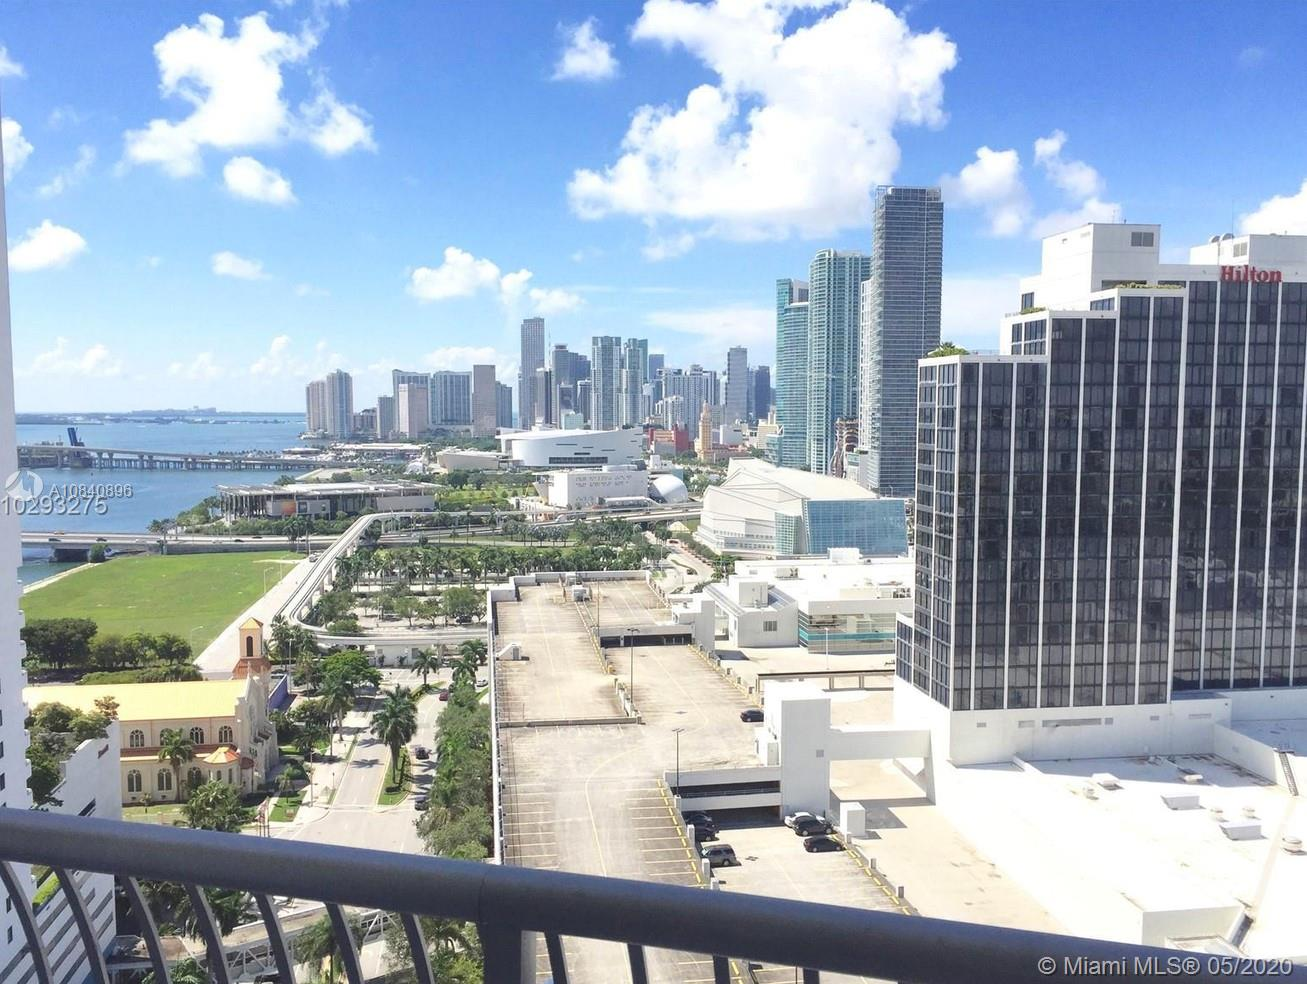 1750 N Bayshore Dr # 2512, Miami, Florida 33132, 1 Bedroom Bedrooms, ,1 BathroomBathrooms,Residential,For Sale,1750 N Bayshore Dr # 2512,A10840896